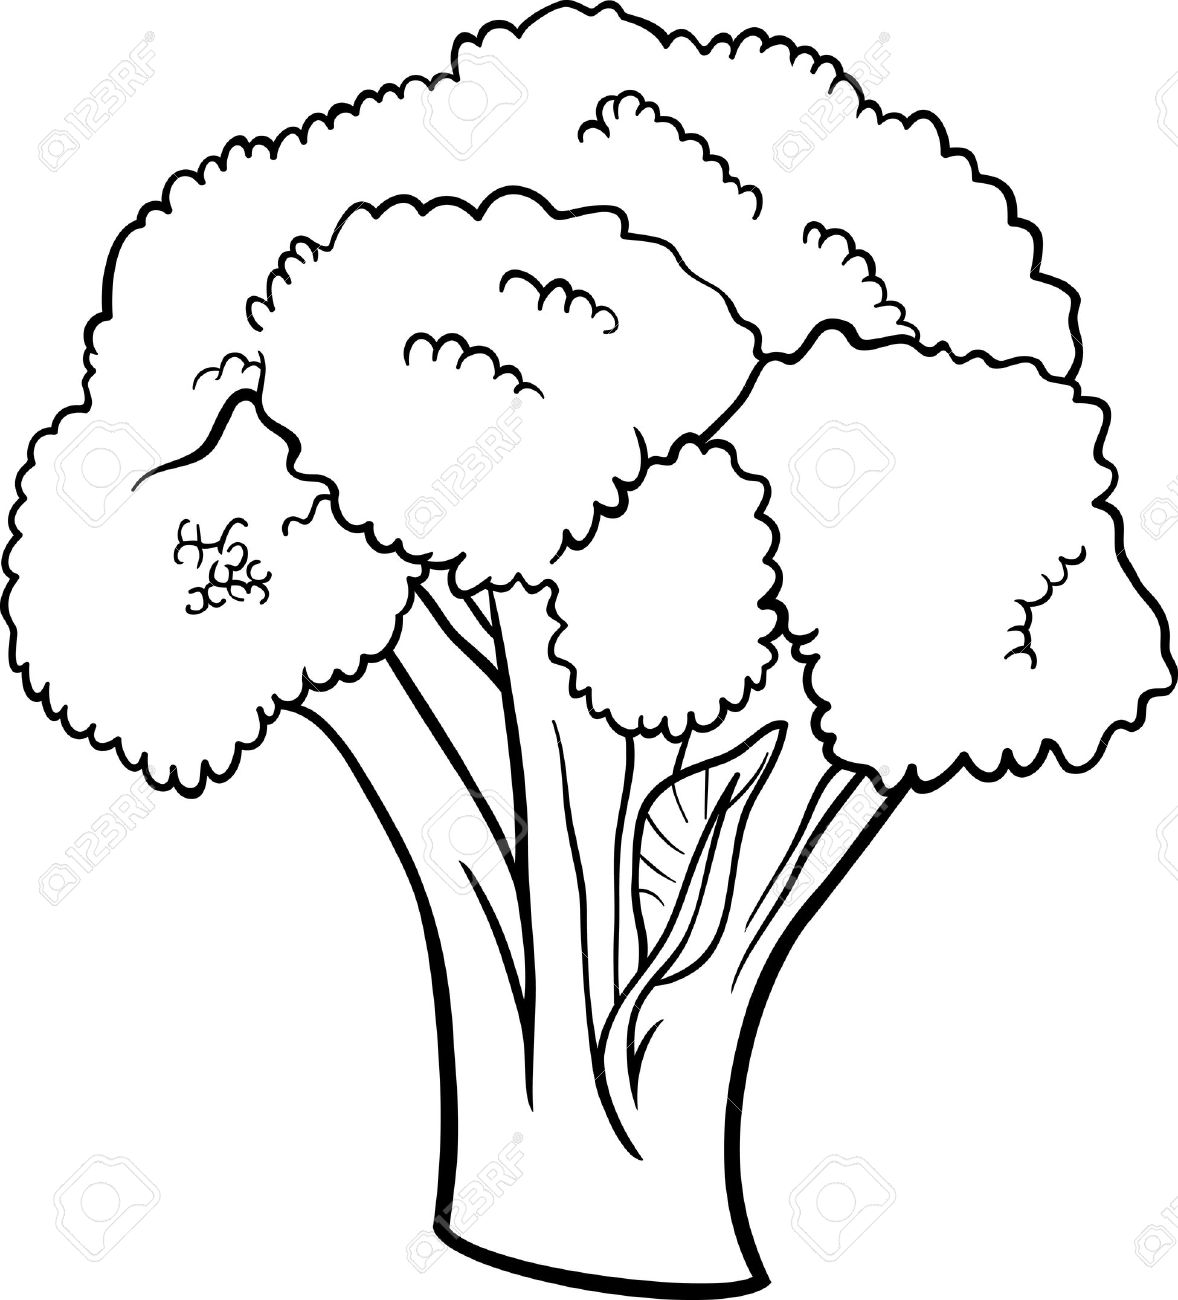 Station . Broccoli clipart black and white